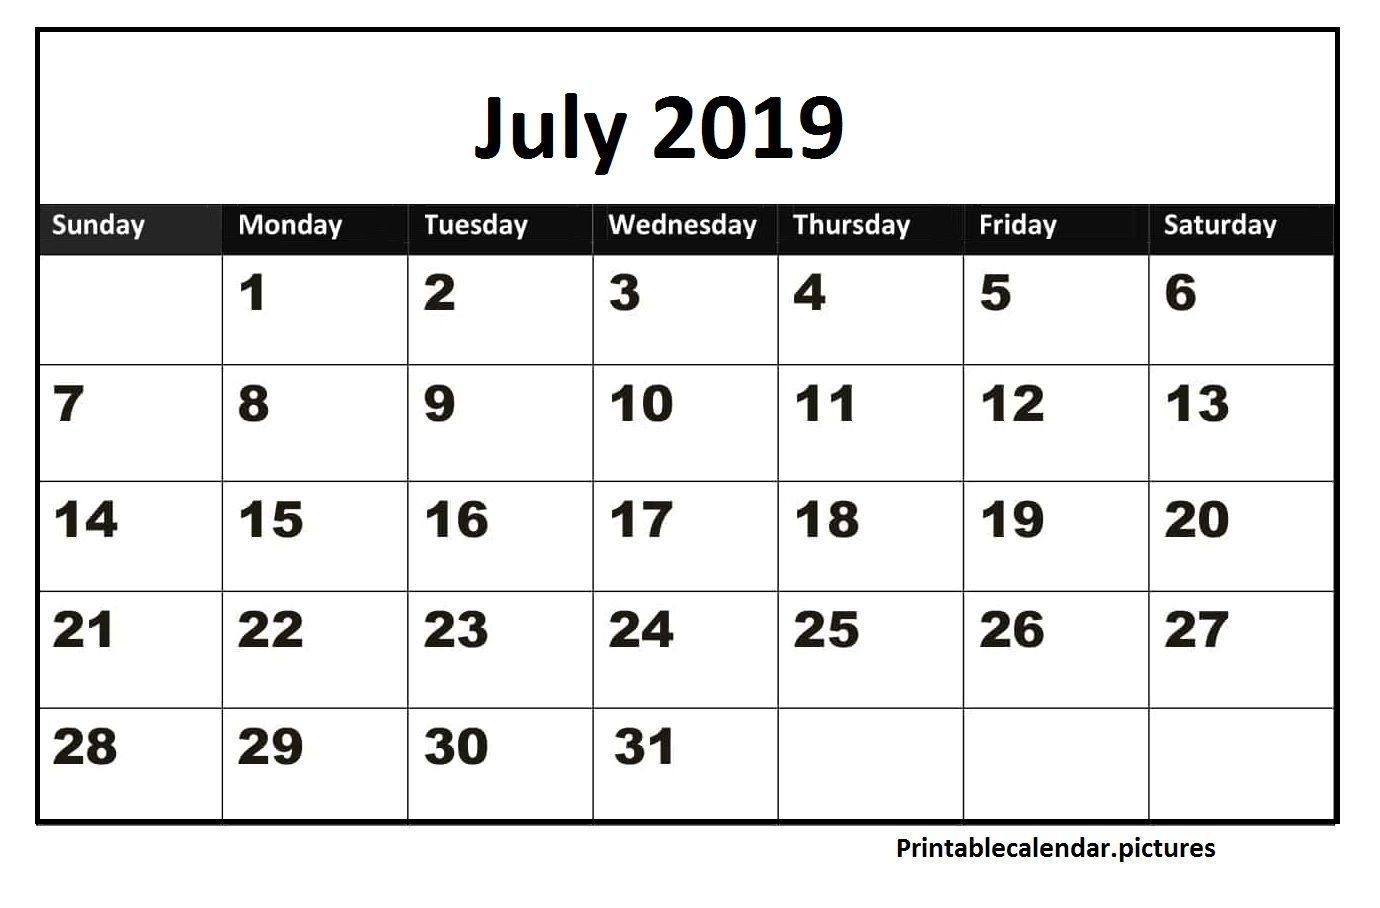 Printable Calendar July 2019 Excel With Images Printable